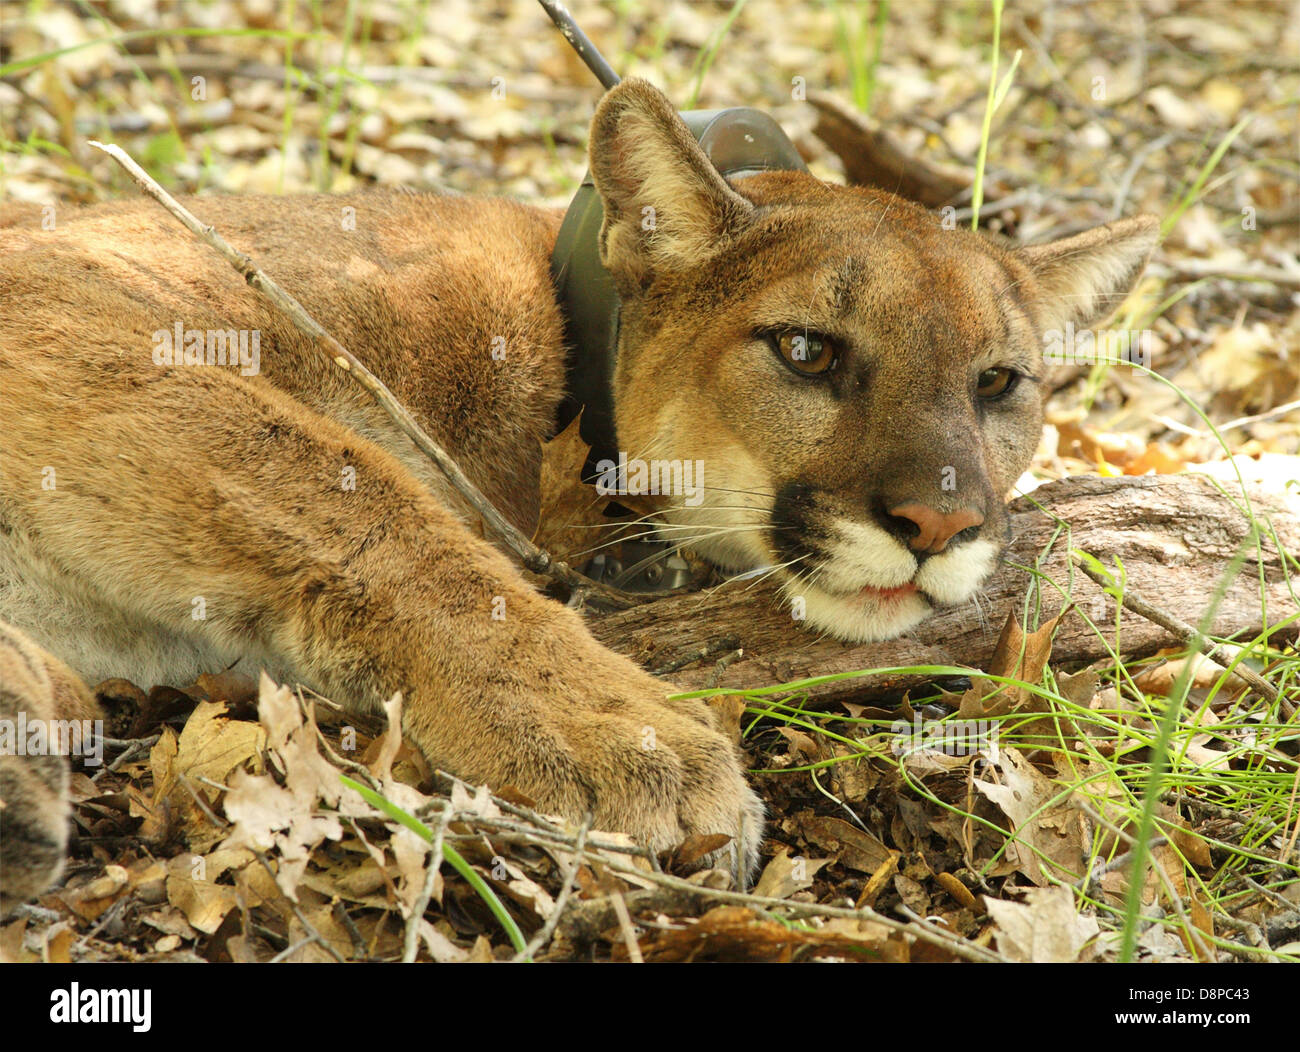 A mountain lion wearing a radio-collar as part of a wildlife research project in California. - Stock Image